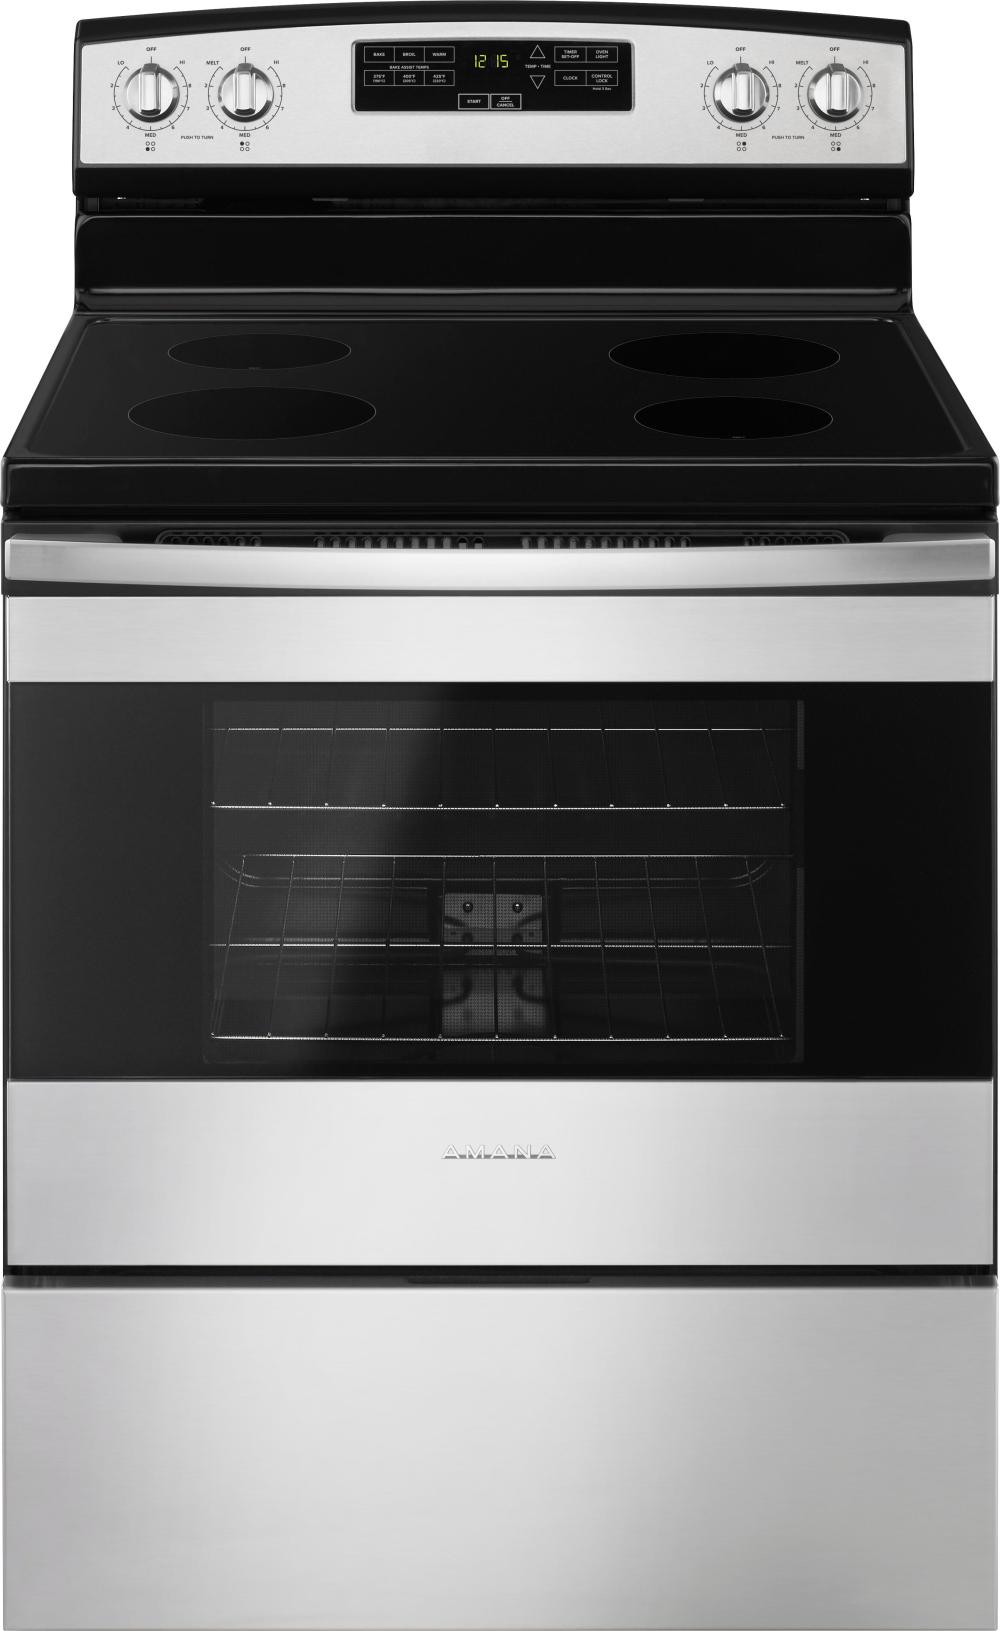 medium resolution of ft freestanding electric range stainless steel aer6303mfs best buy